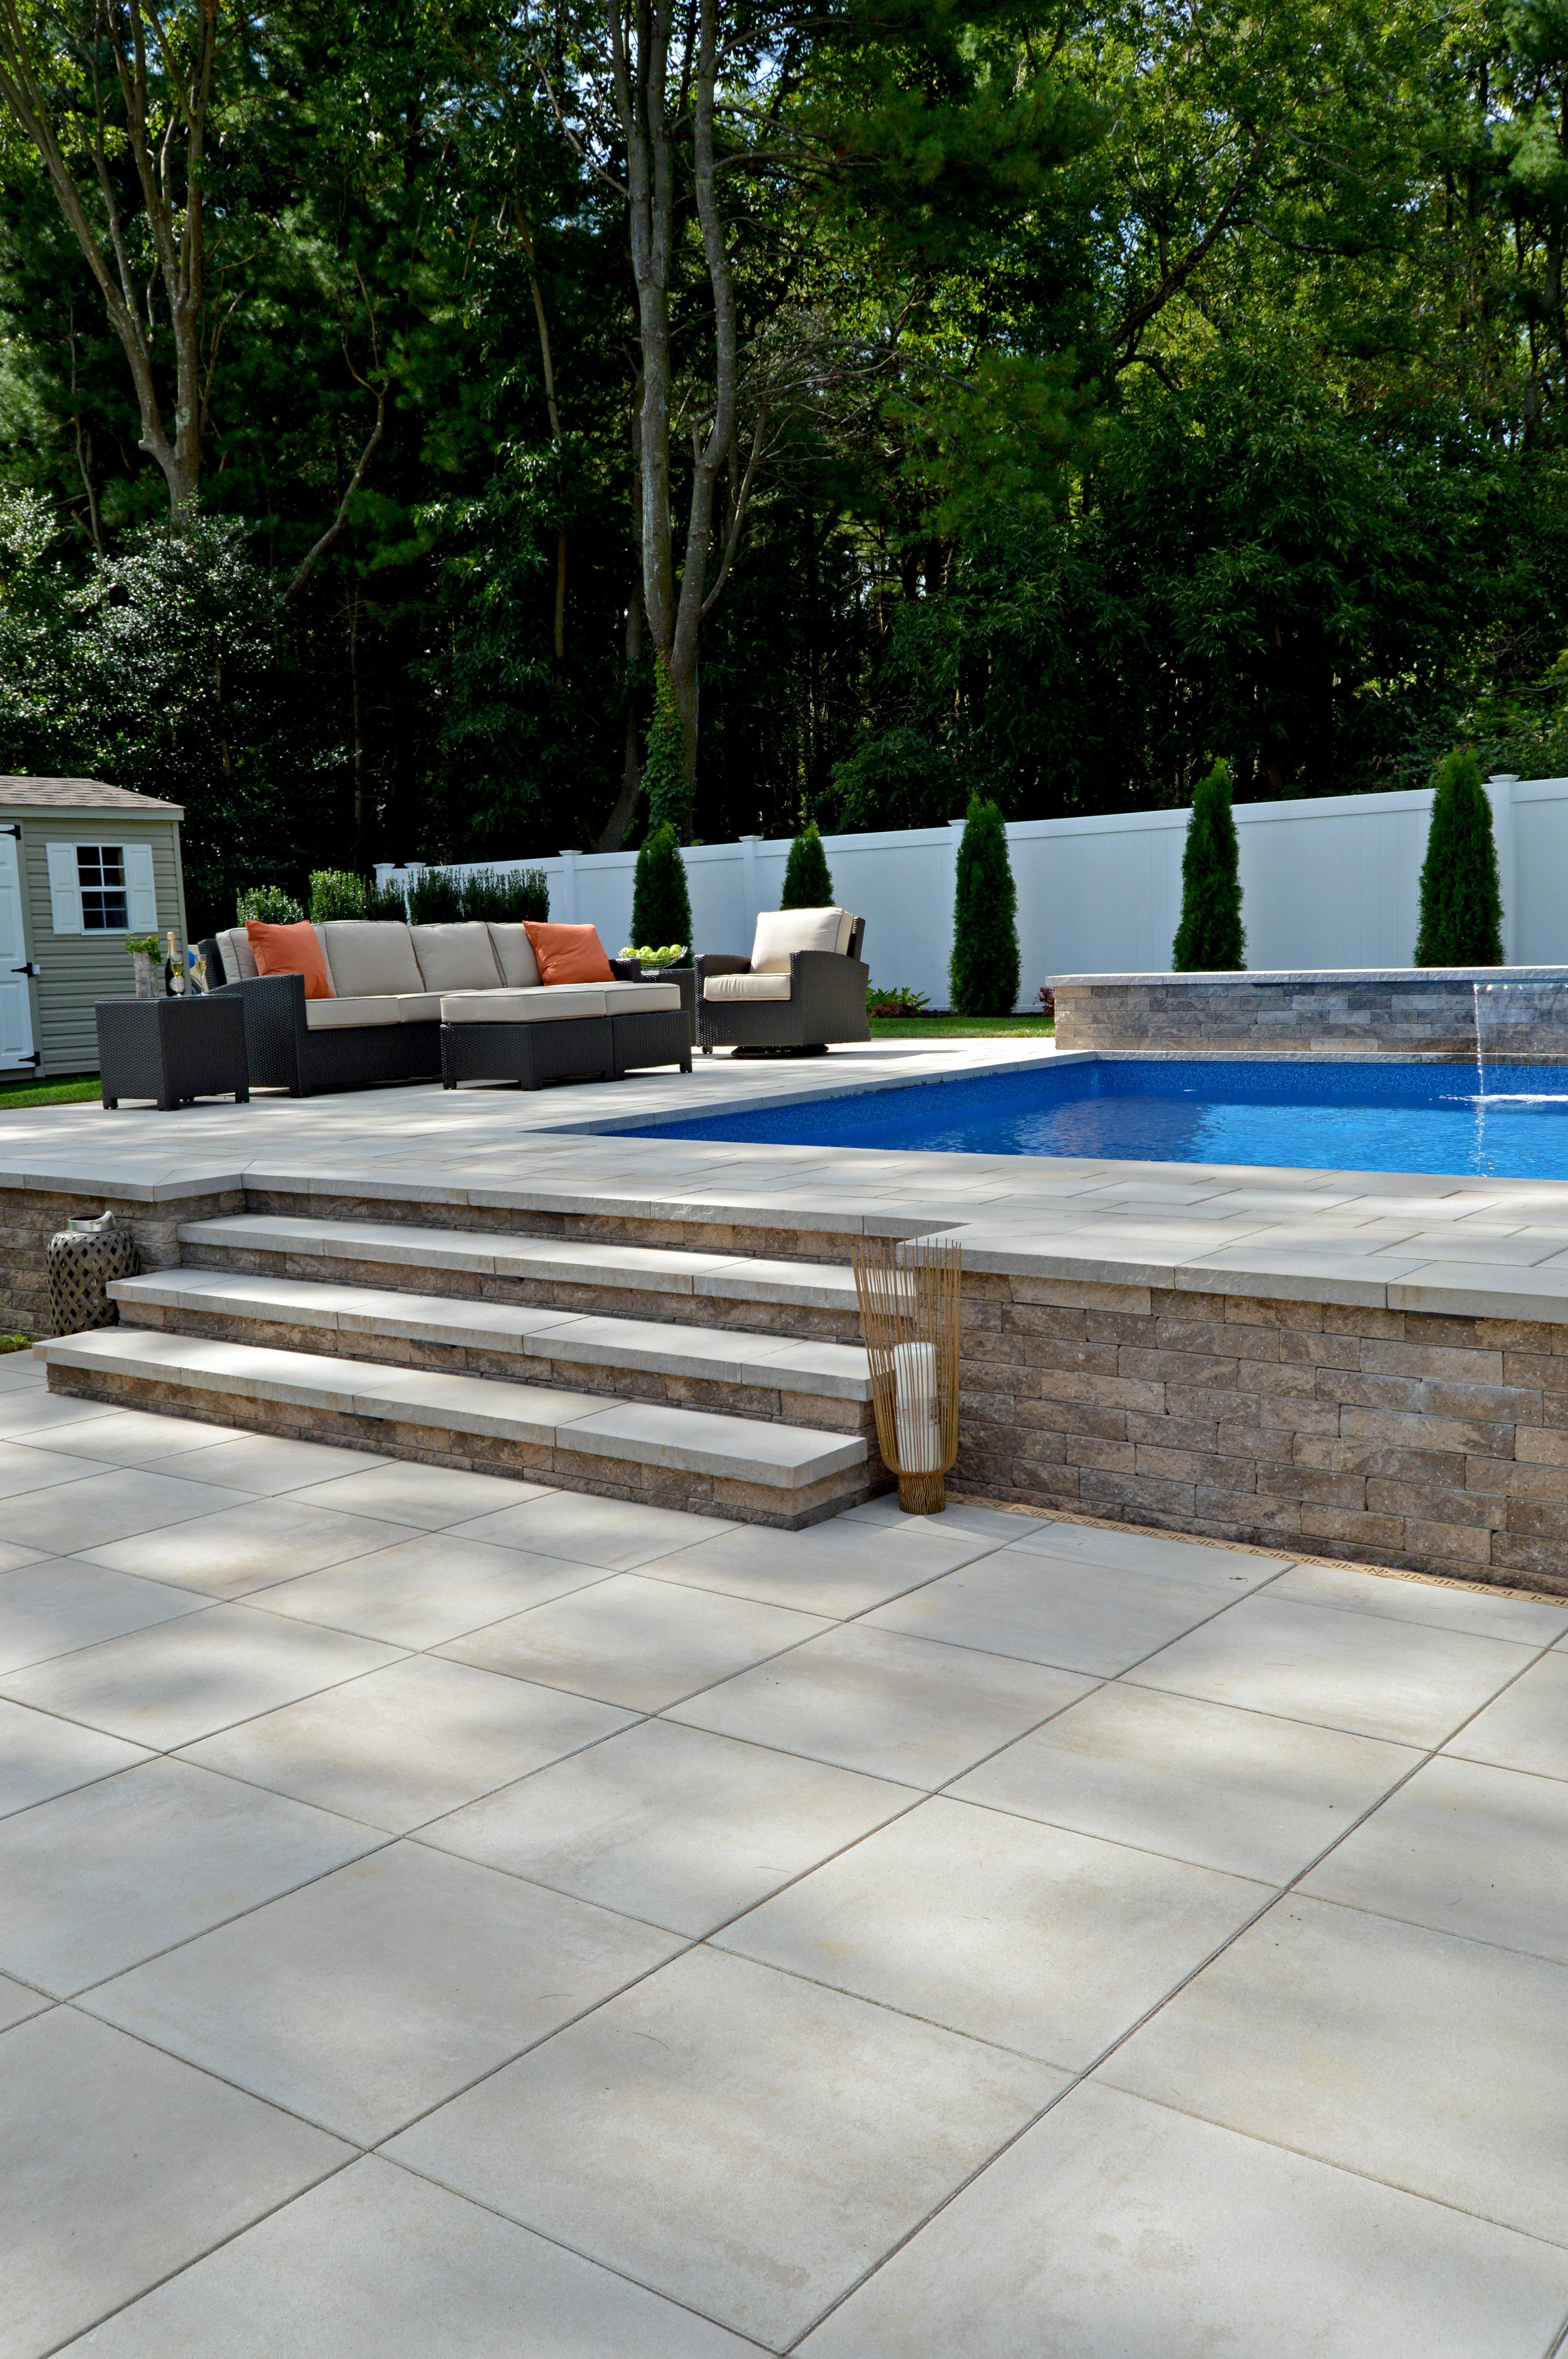 Landscape pool design in Hauppauge, NY